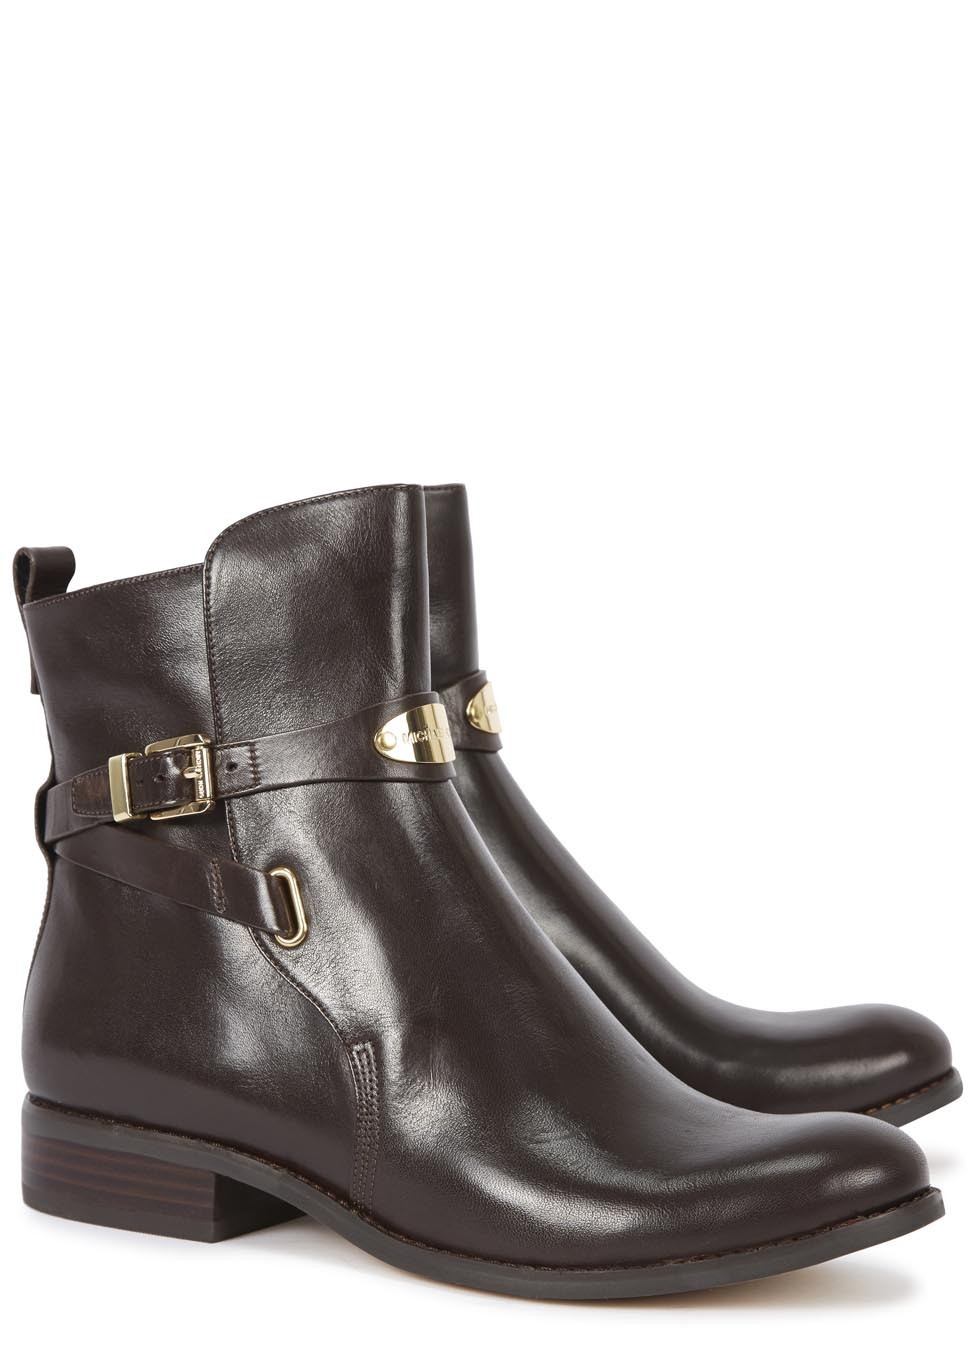 michael kors arley brown leather ankle boots in brown lyst